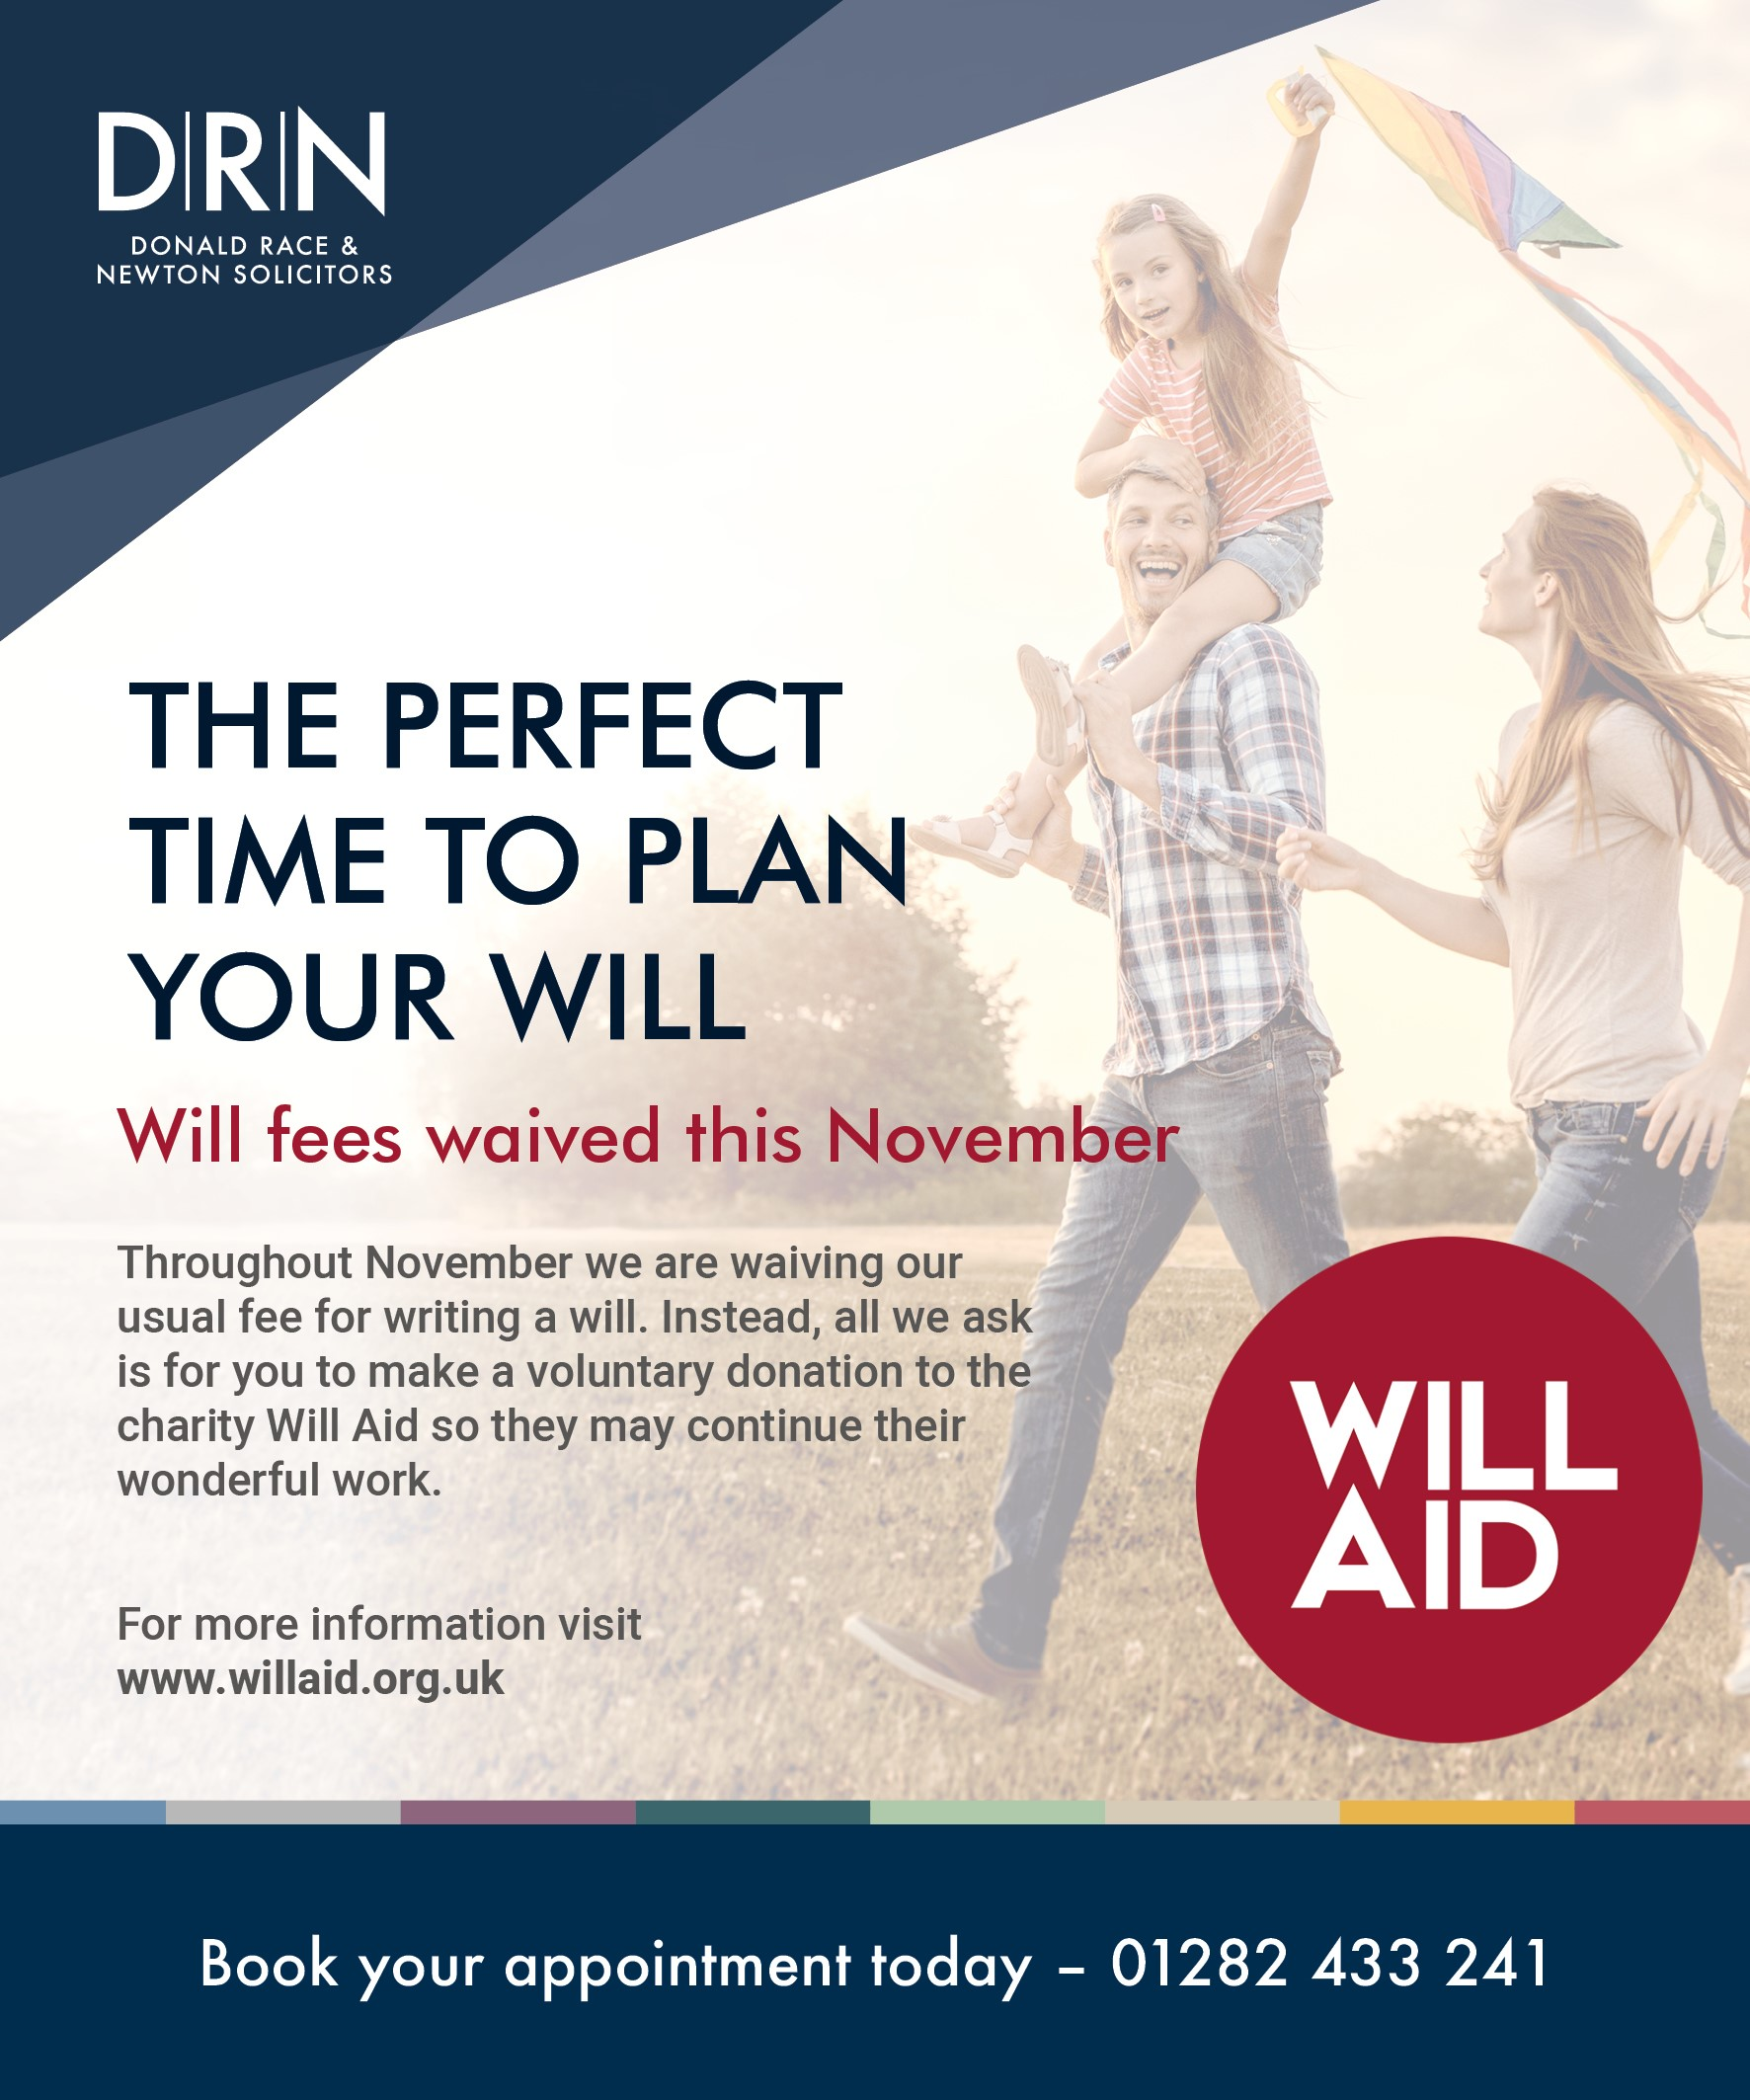 DRN Joins Forces with Will Aid For November